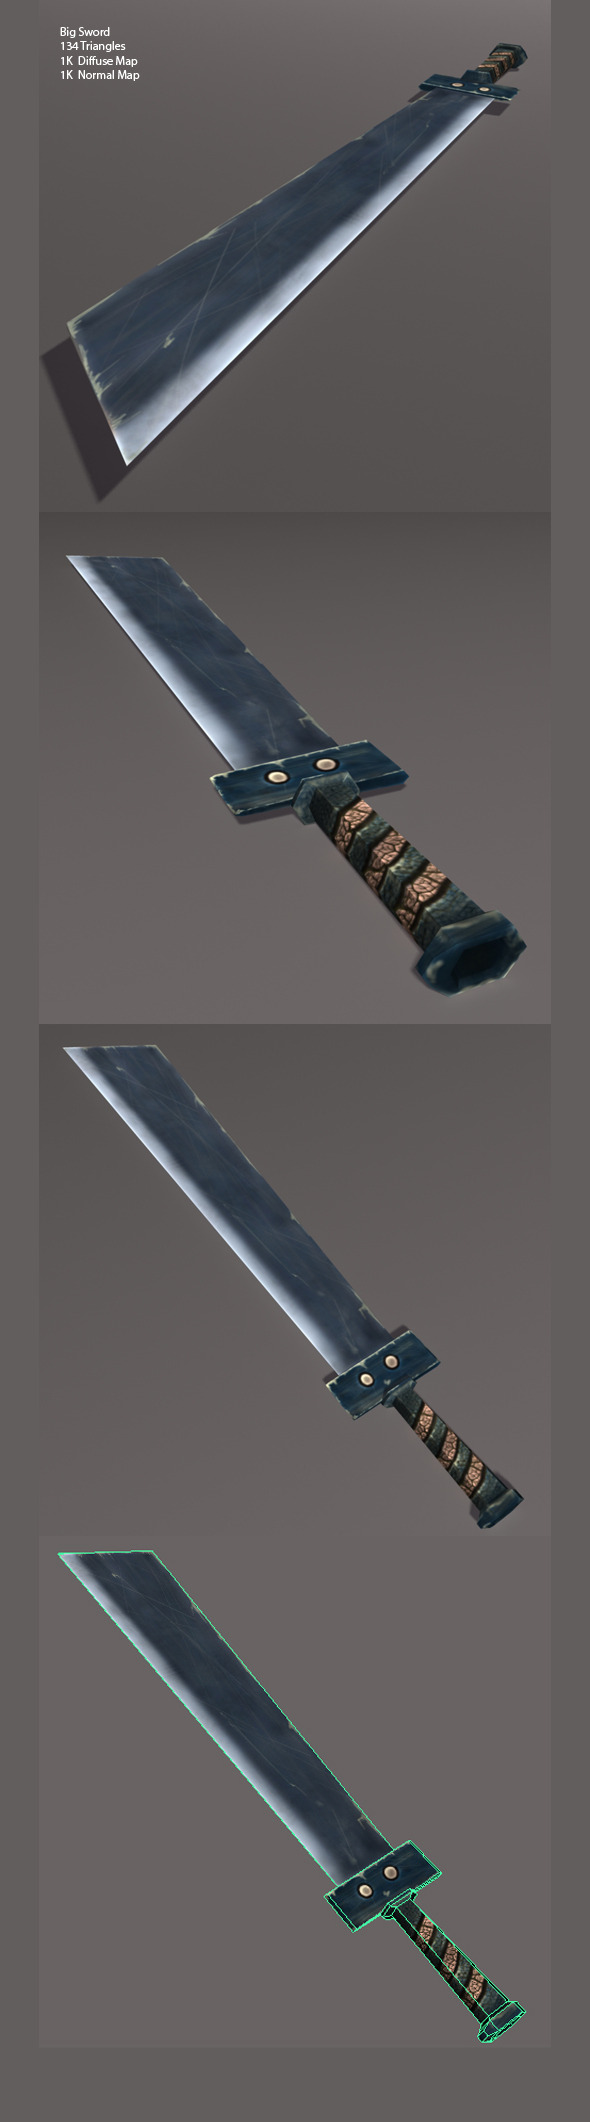 Low Poly Big Sword - 3DOcean Item for Sale